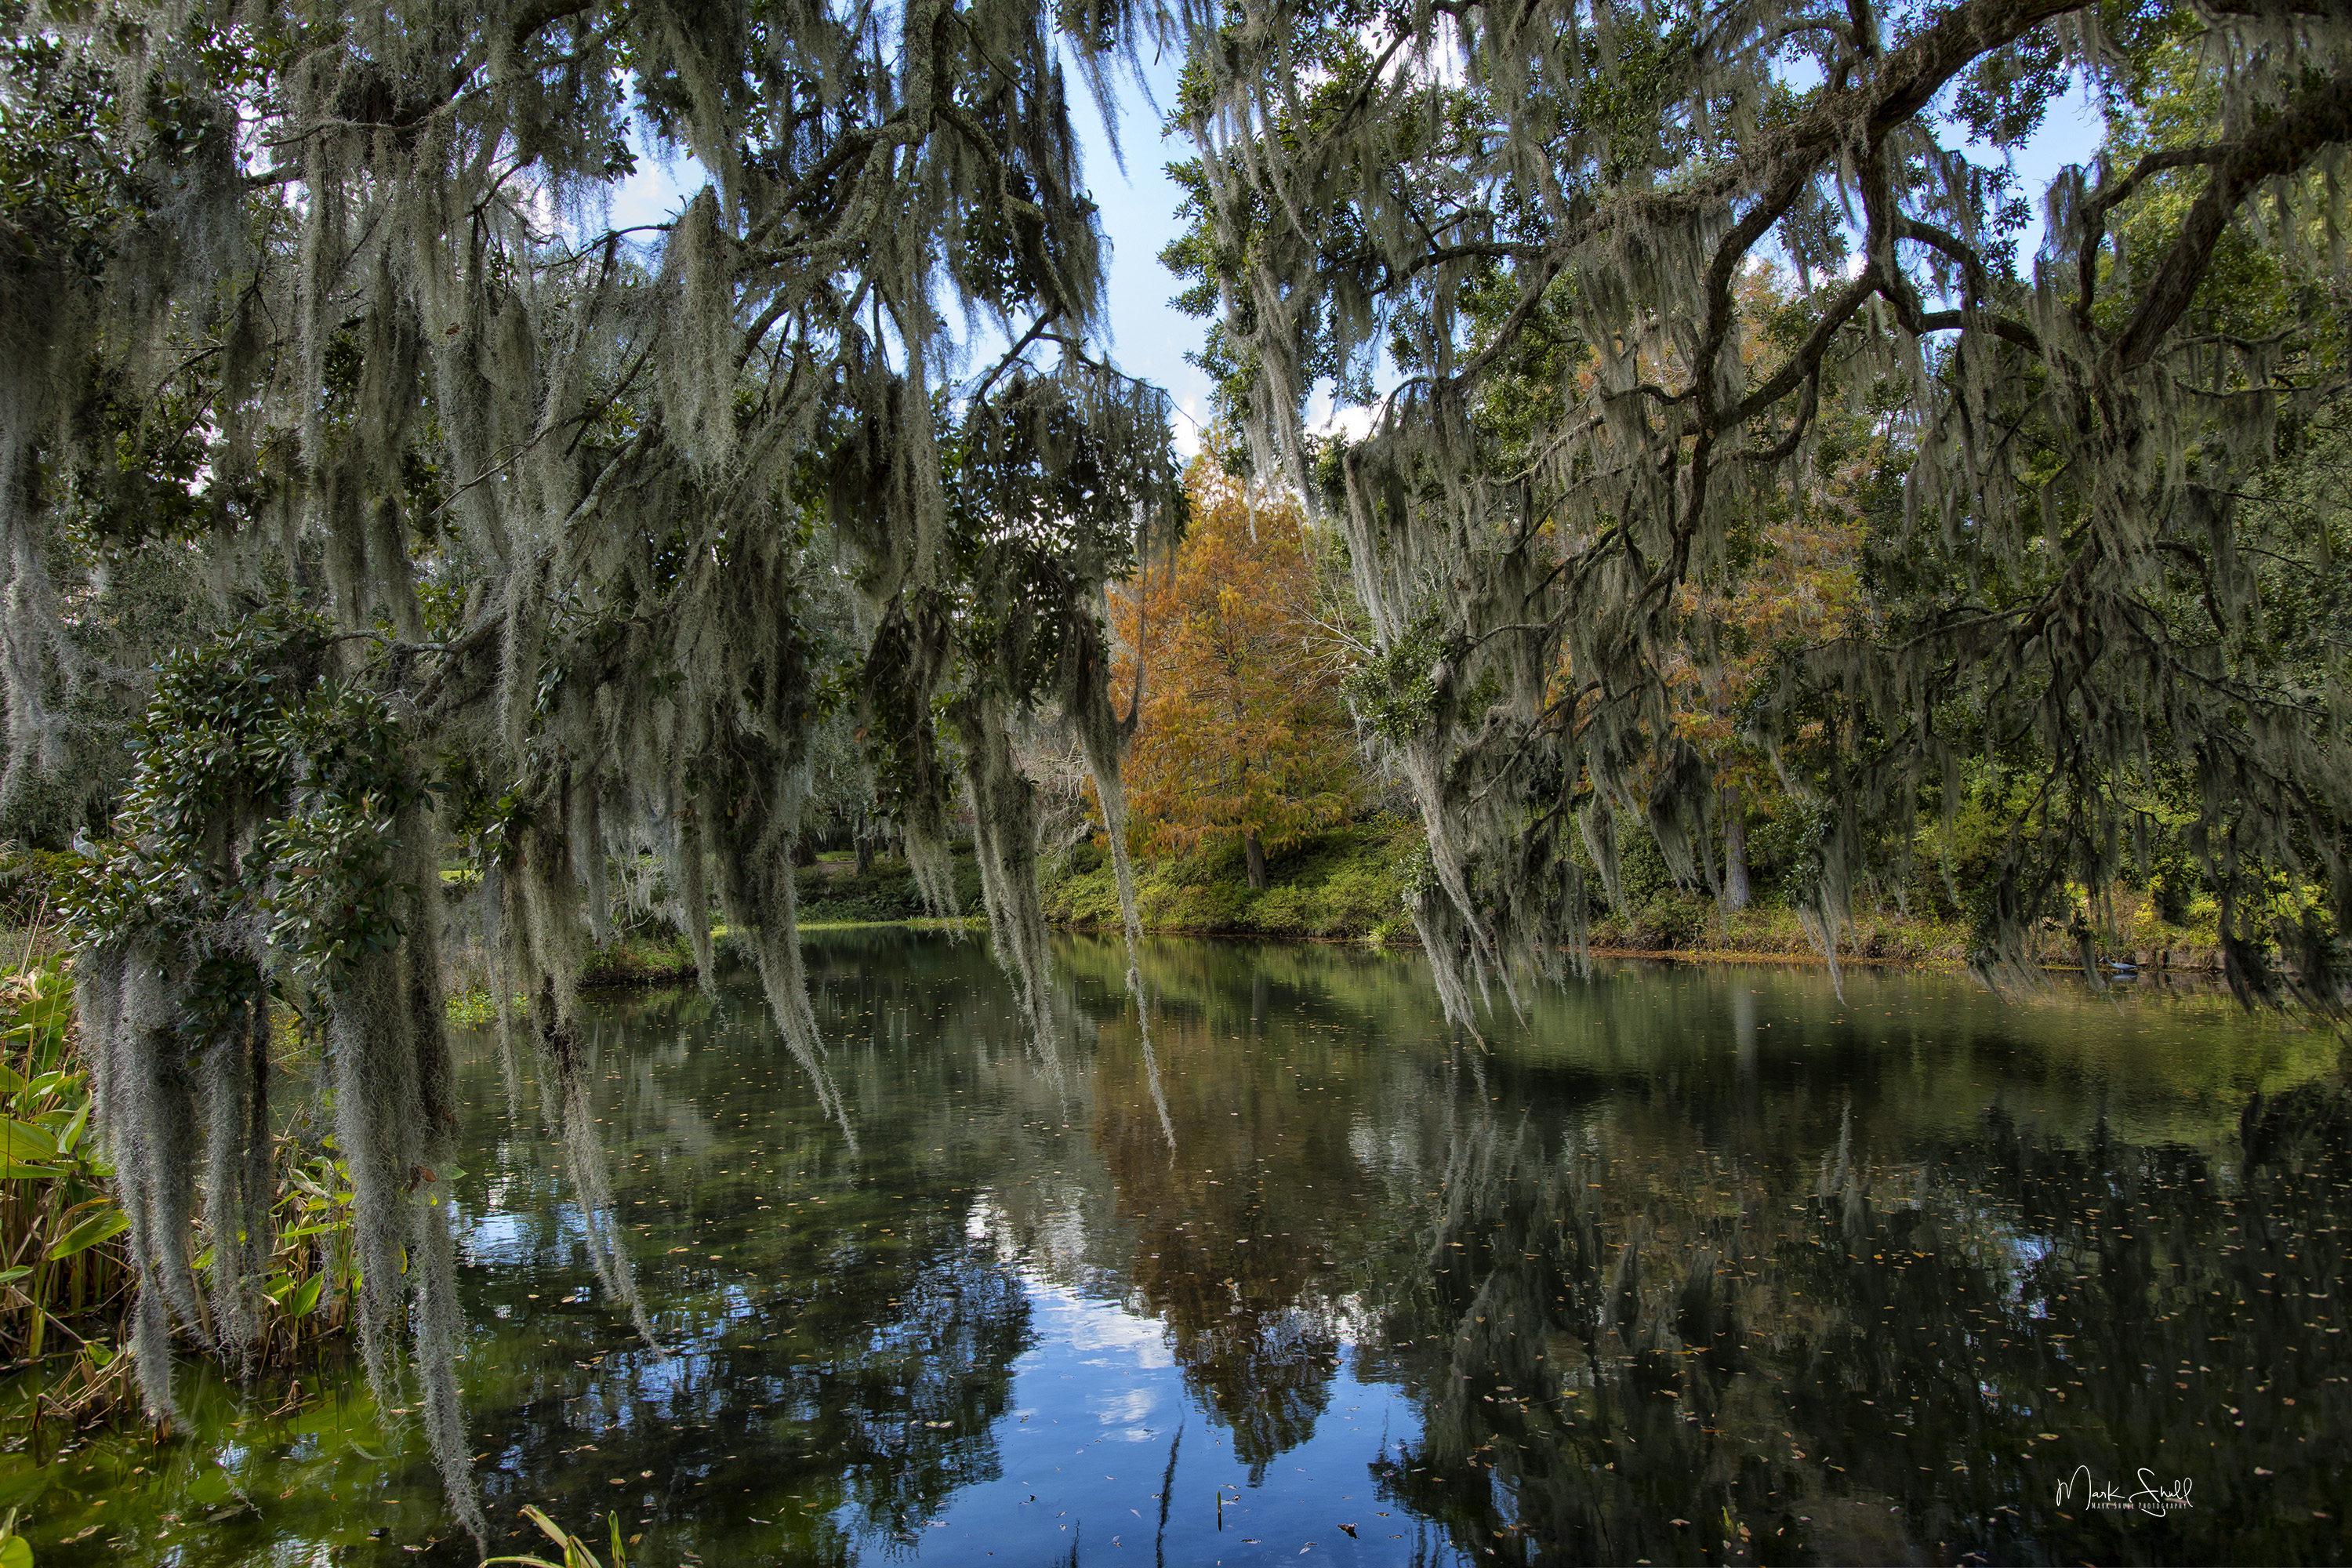 Middleton Plantation reflection pond pos